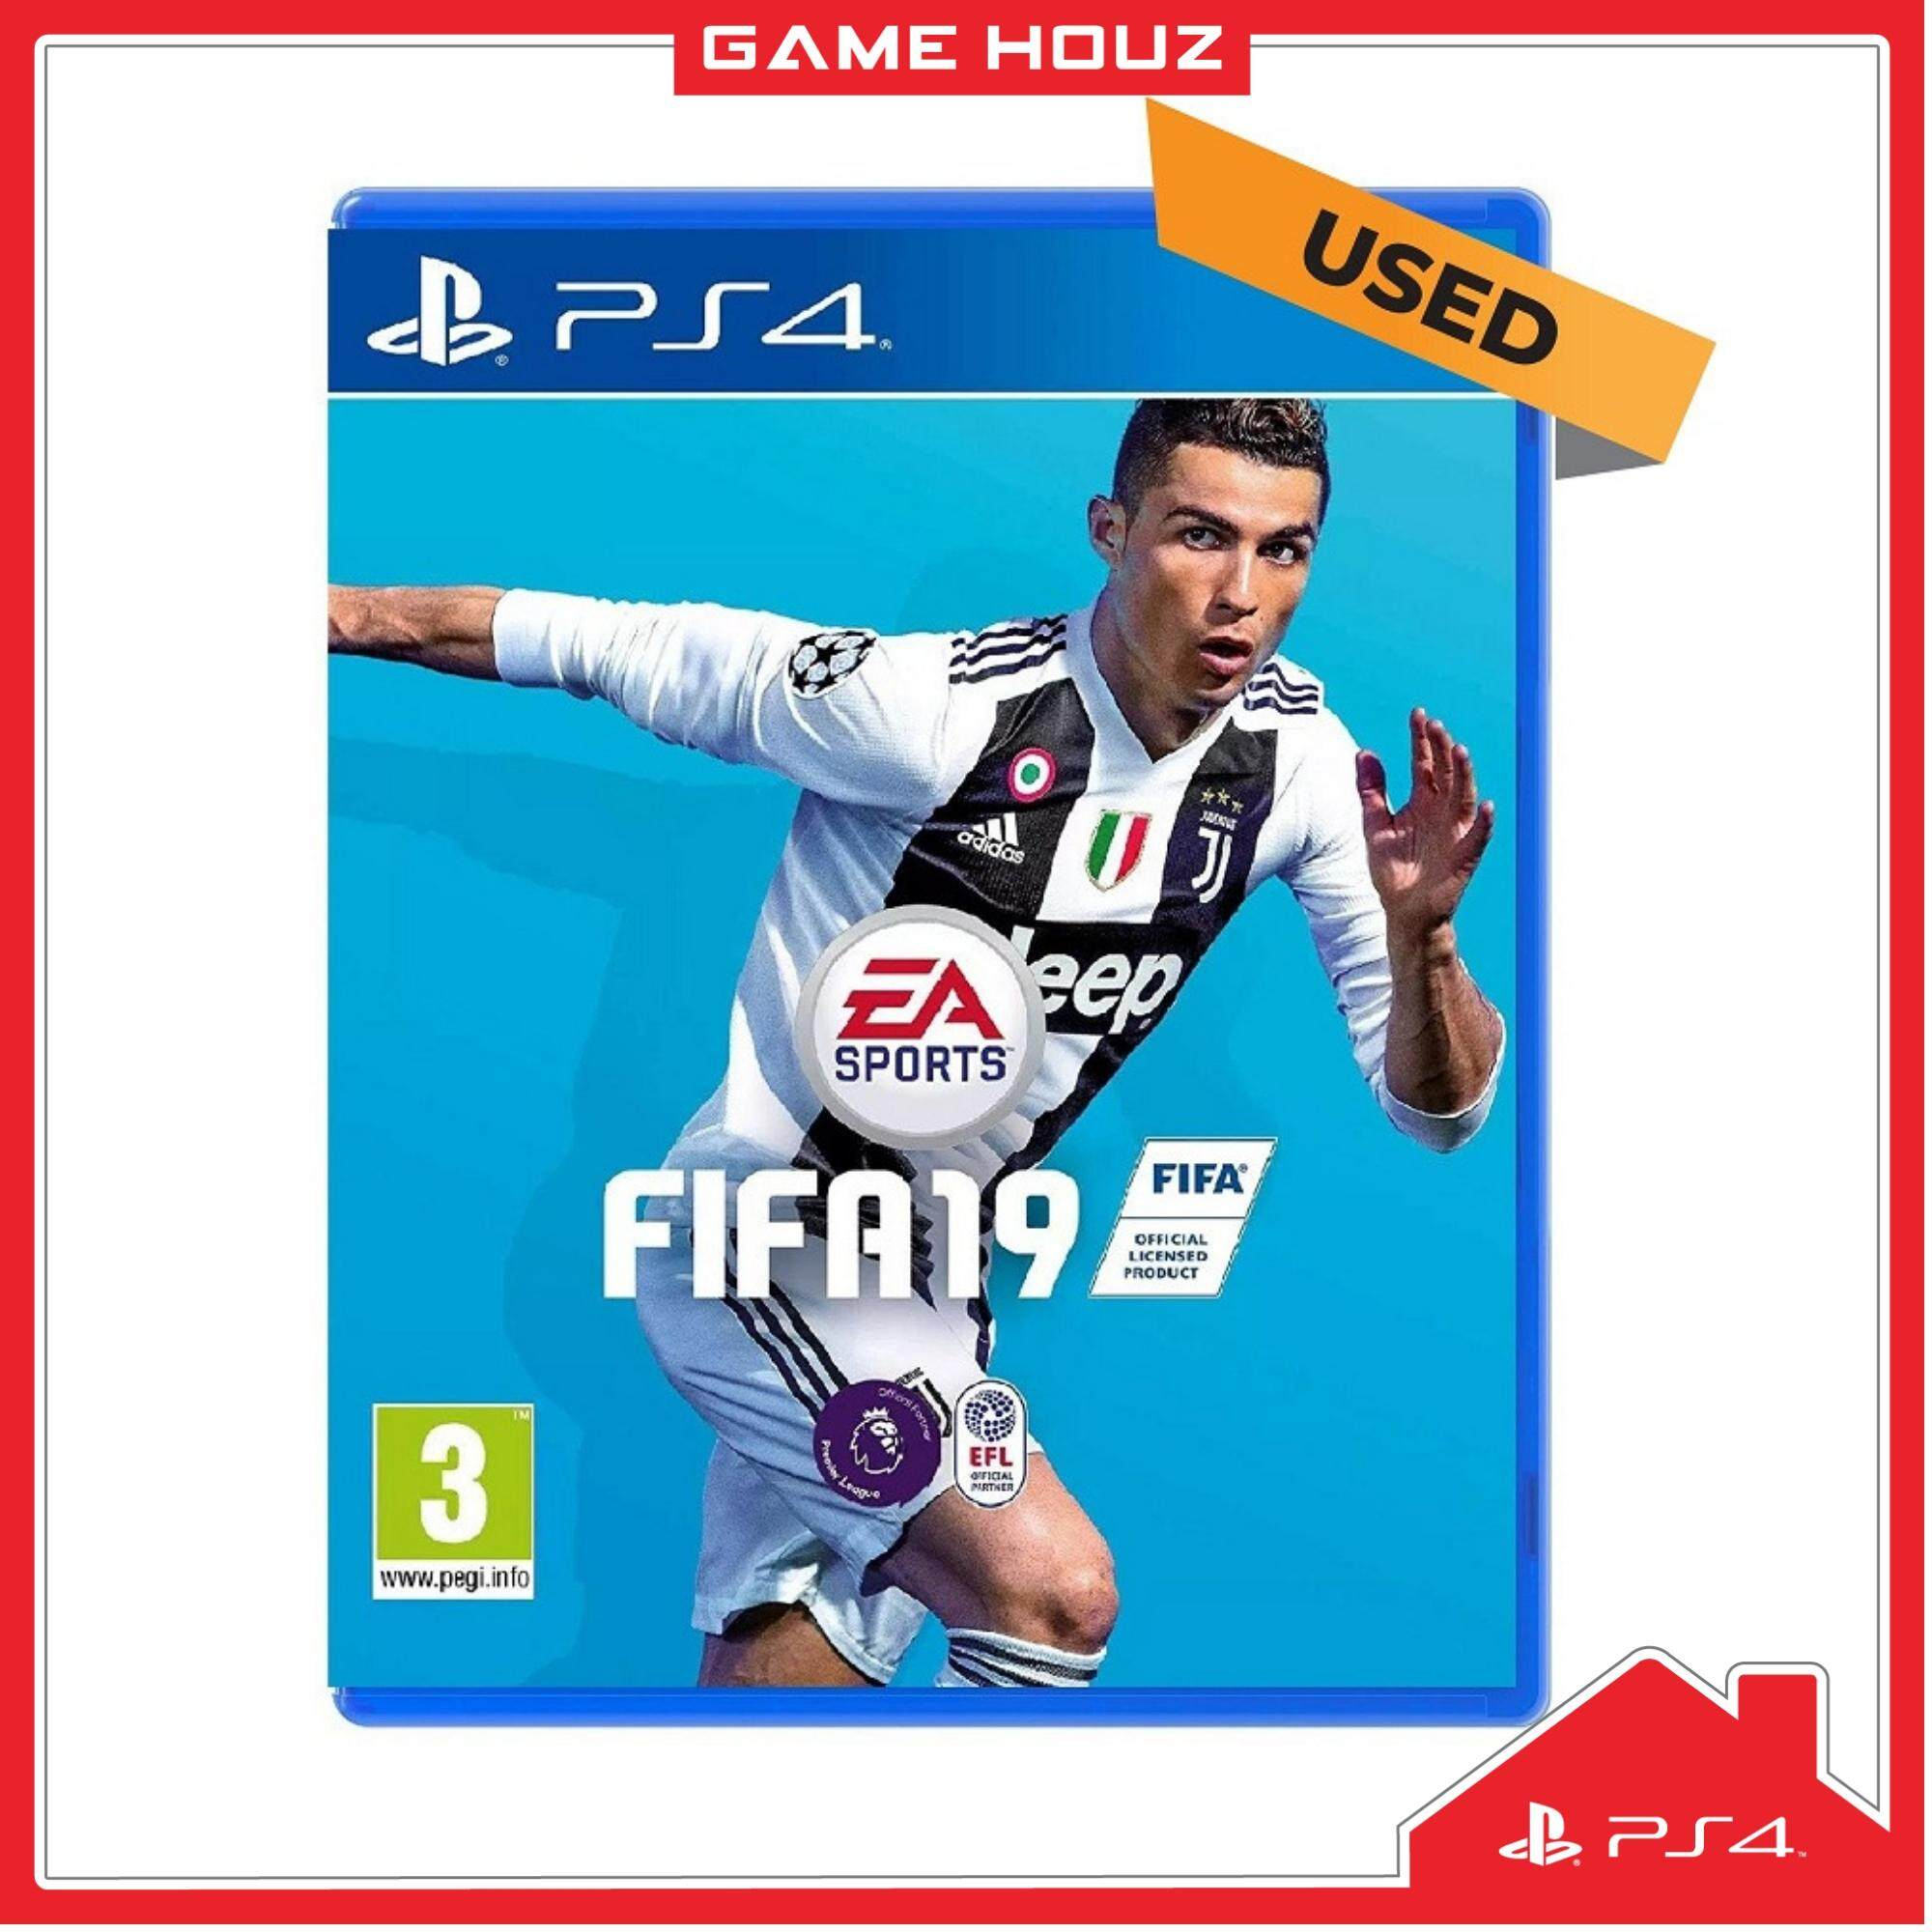 (PS4) FIFA 19 (R3/ENG/CHN) - Used